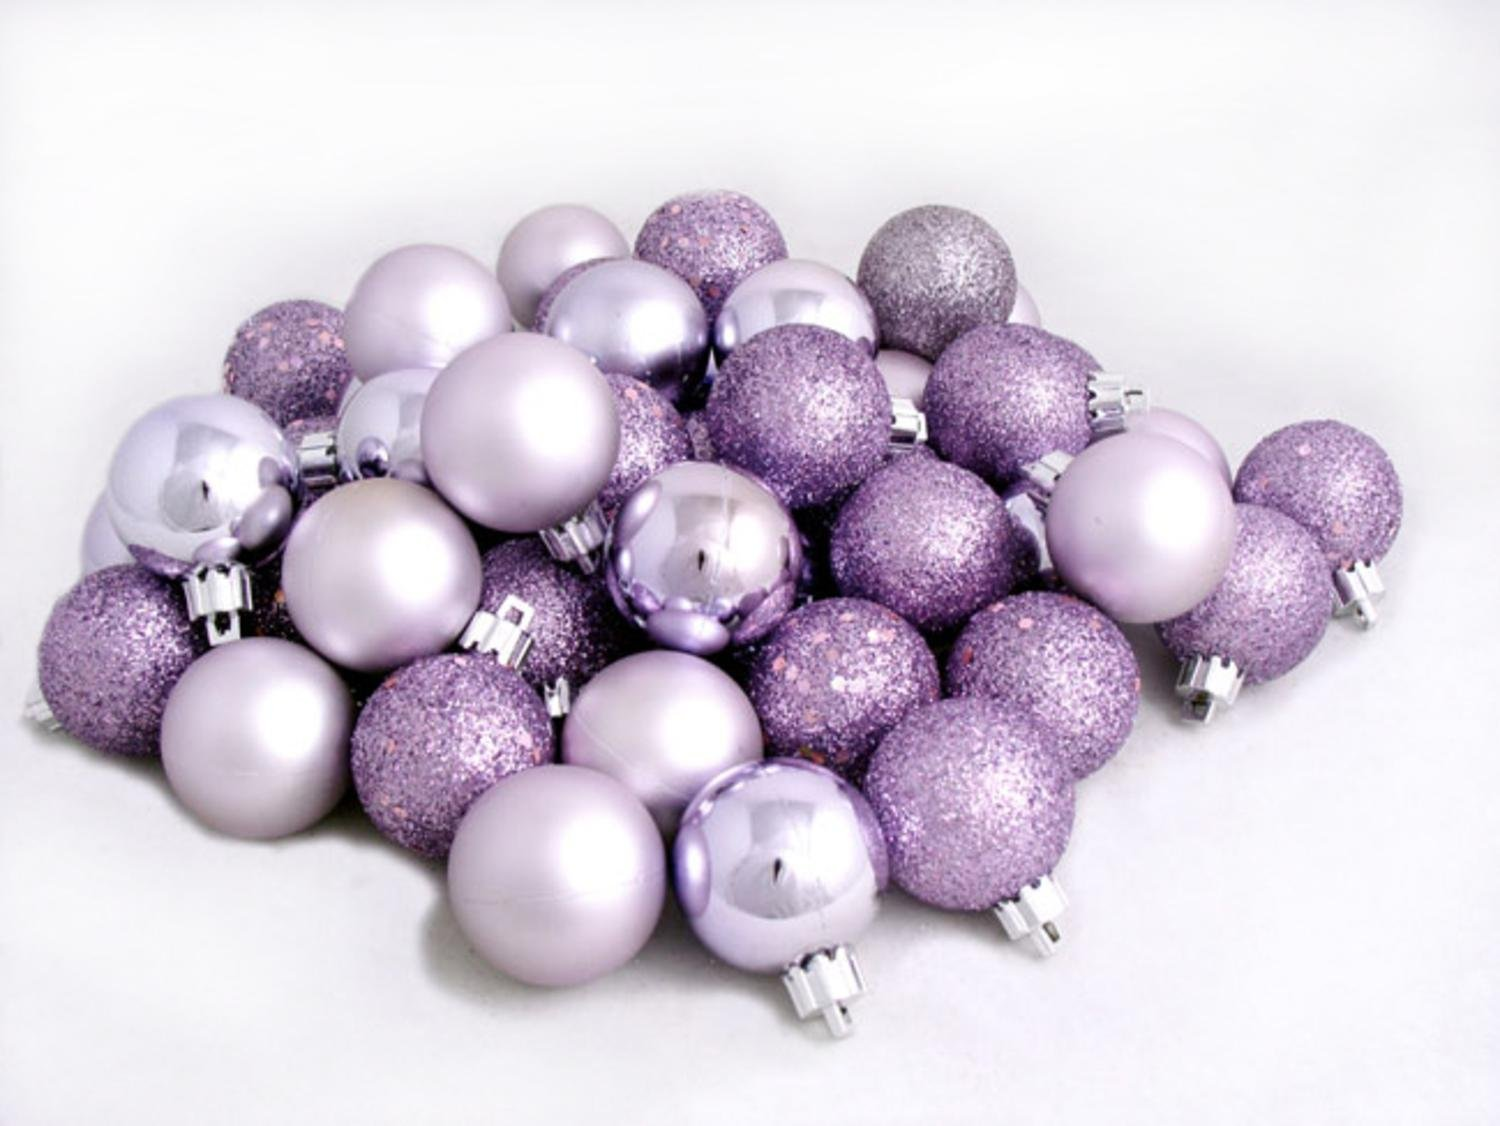 amazoncom 96ct purple lavender shatterproof 4 finish christmas ball ornaments 15 40mm home kitchen - Purple Christmas Decorations